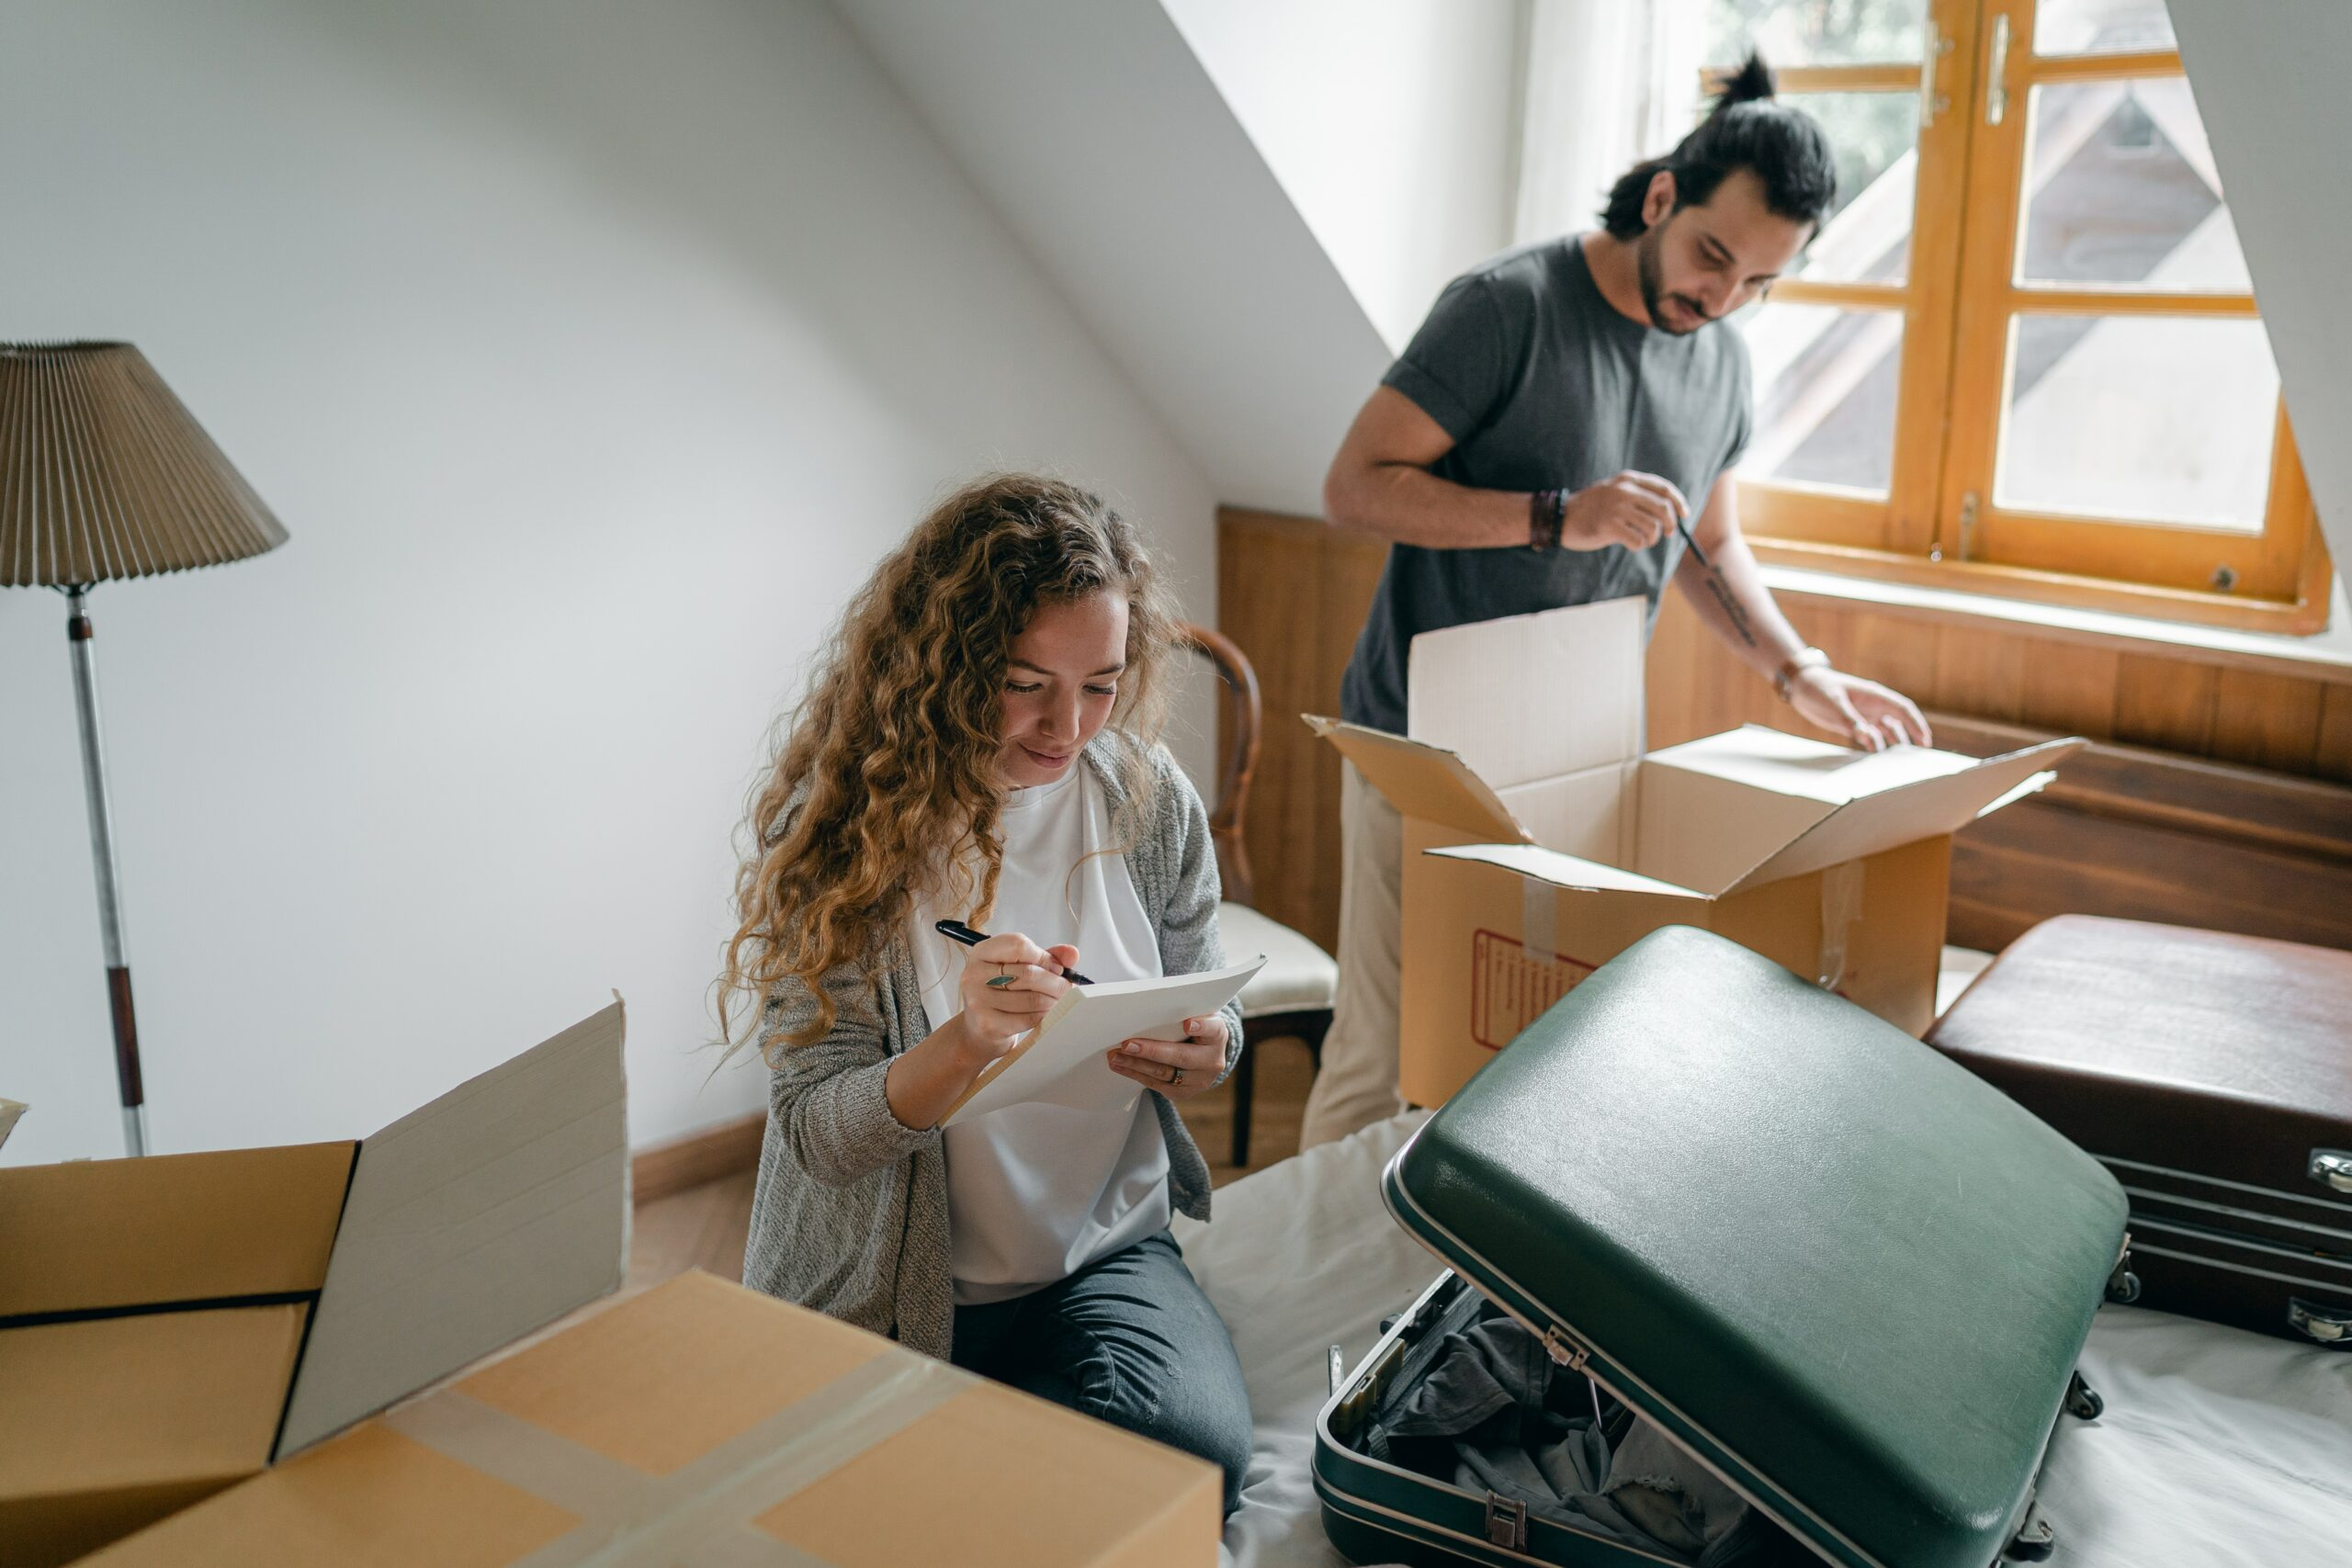 pexels ketut subiyanto 4245909 scaled - 5 Rental Trends You Need to Understand as a Landlord